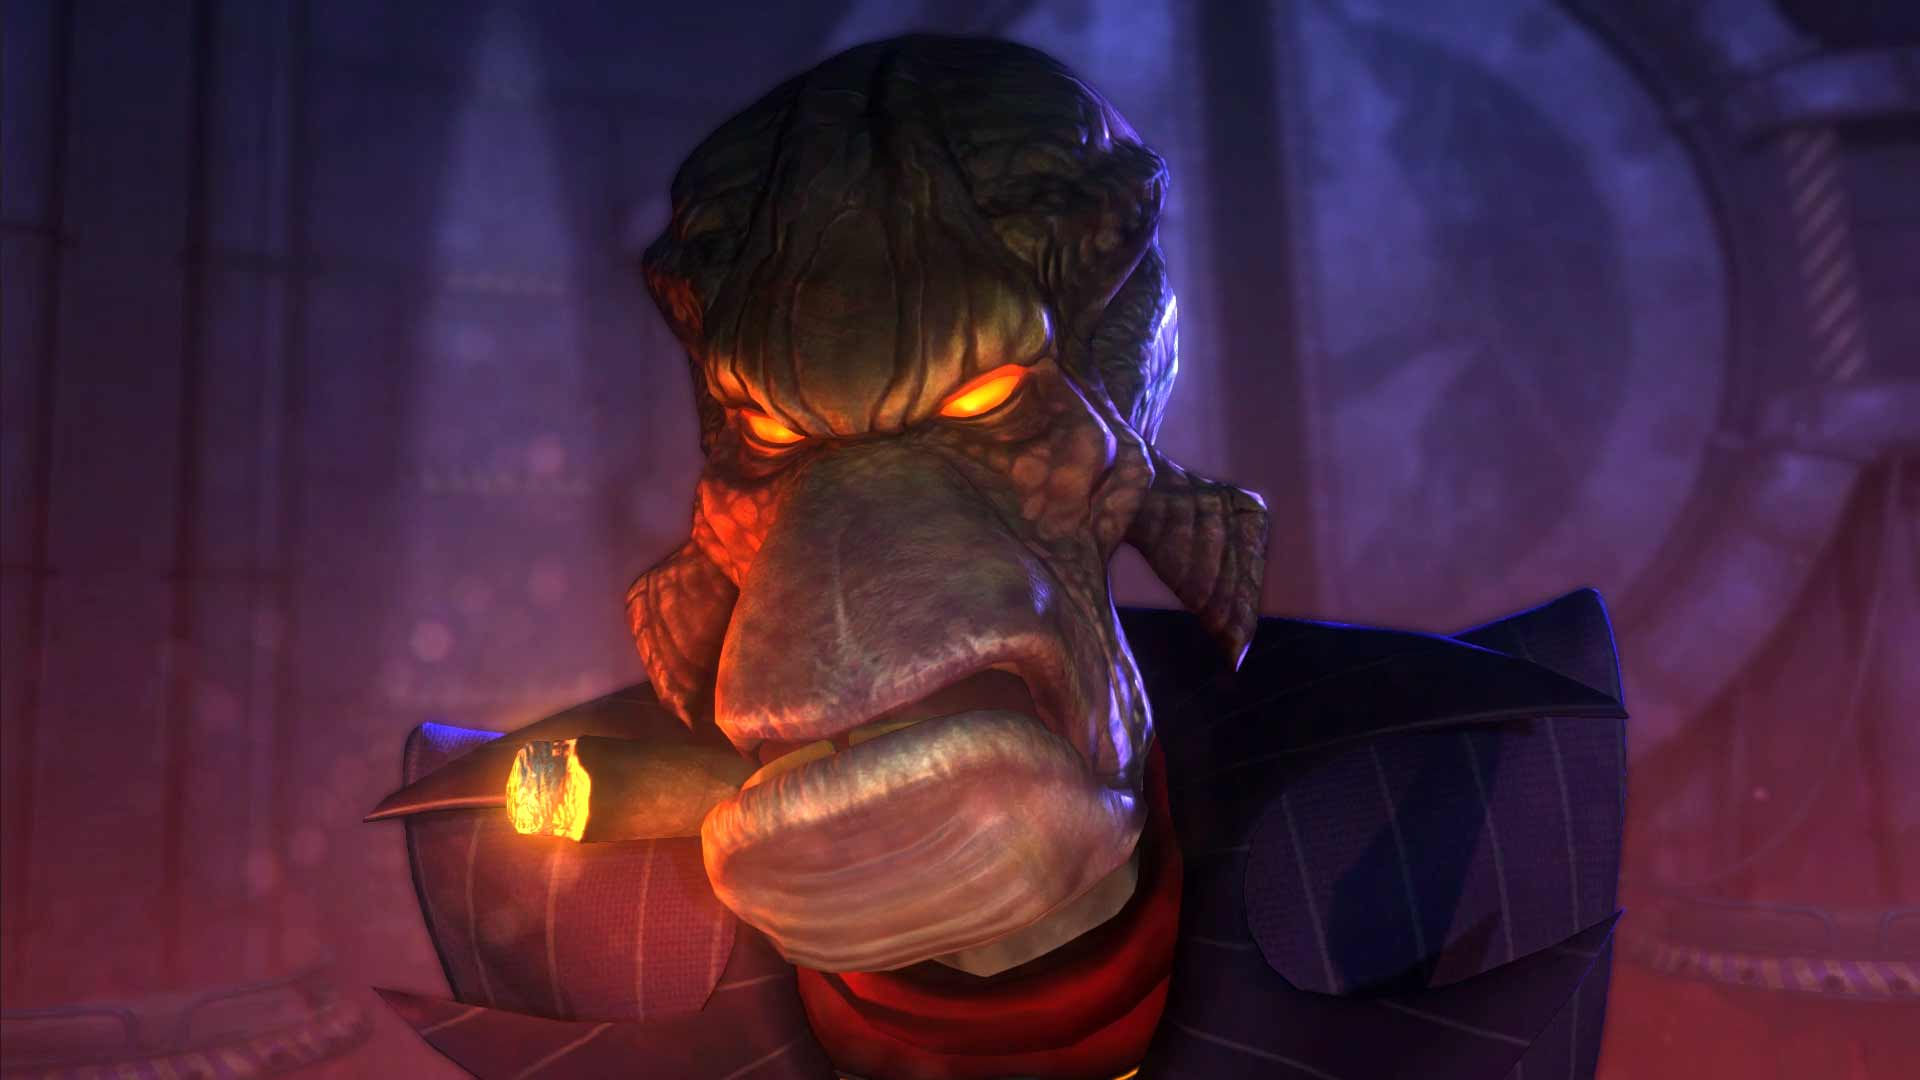 Oddworld: Abe's Oddysee dev recants, giving PS3 and Vita versions to PS Plus downloaders